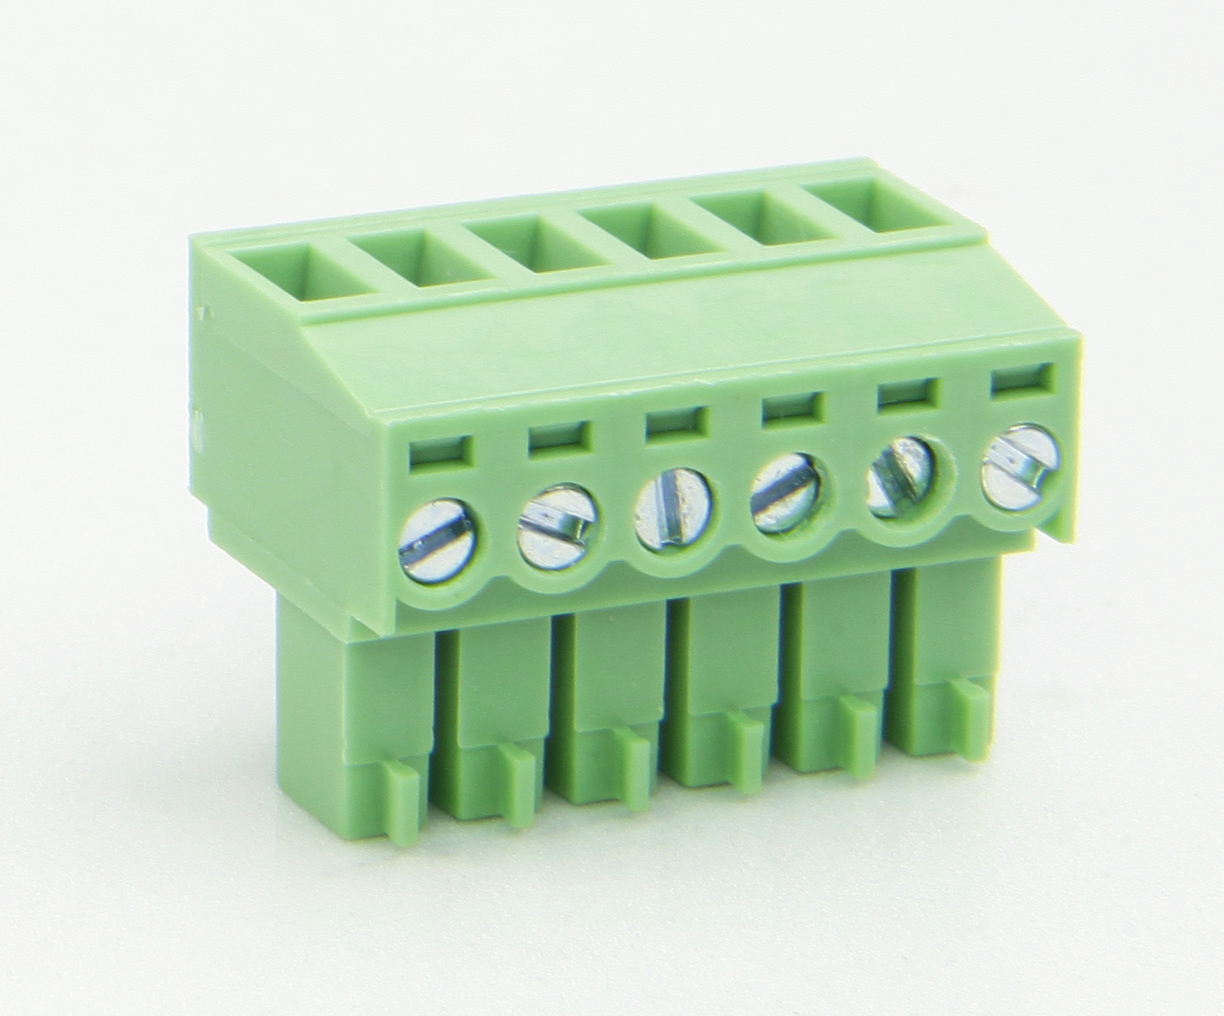 15ELPK-3.81 Pcb Wire Connectors